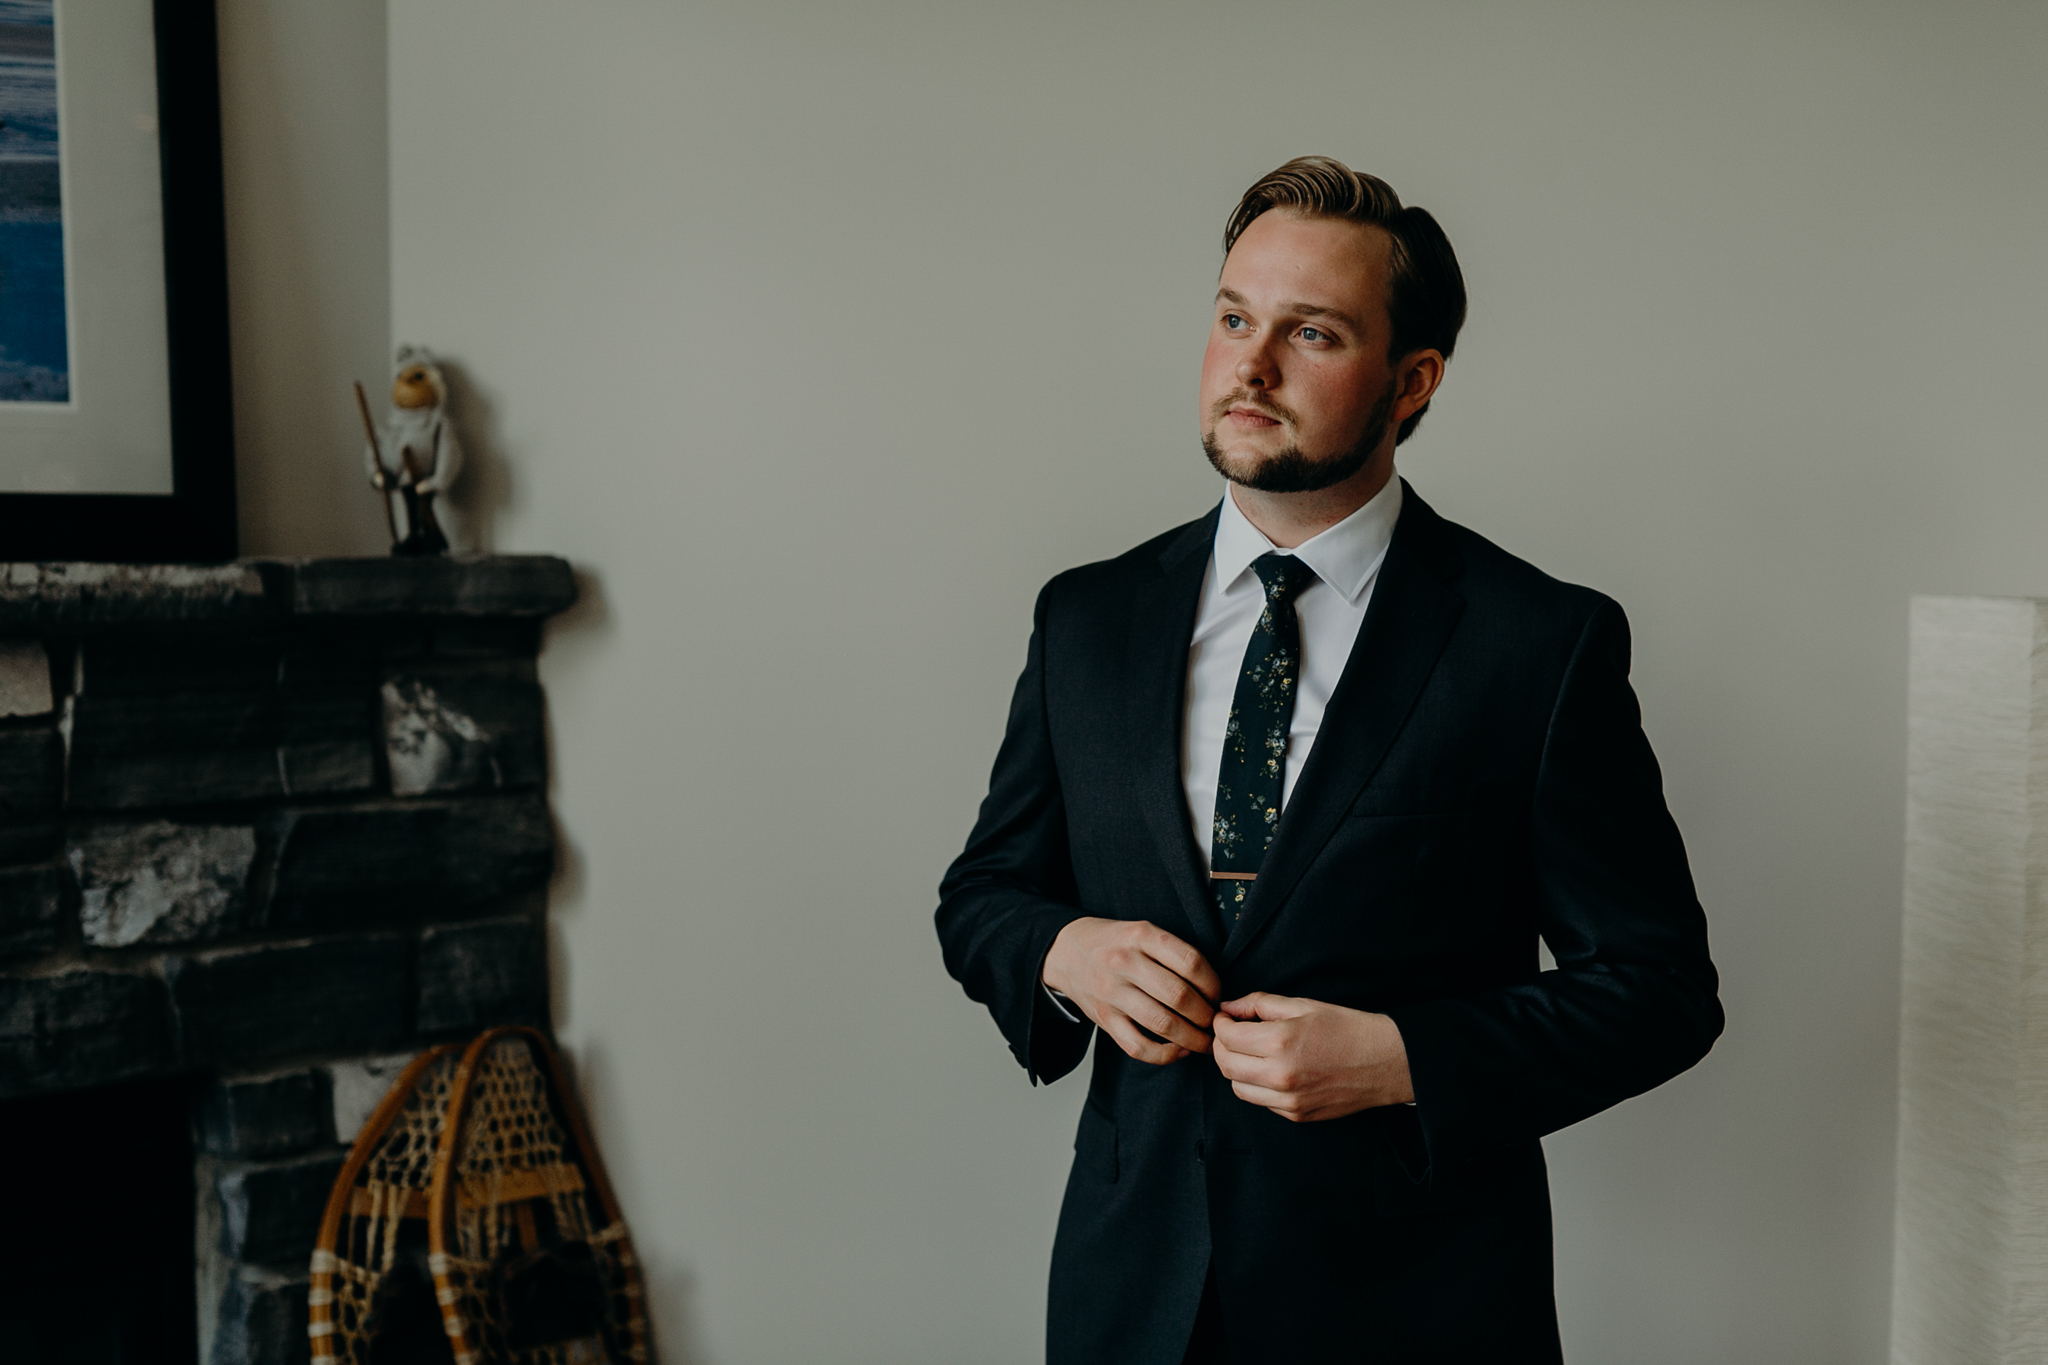 Portrait of groom buttoning jacket